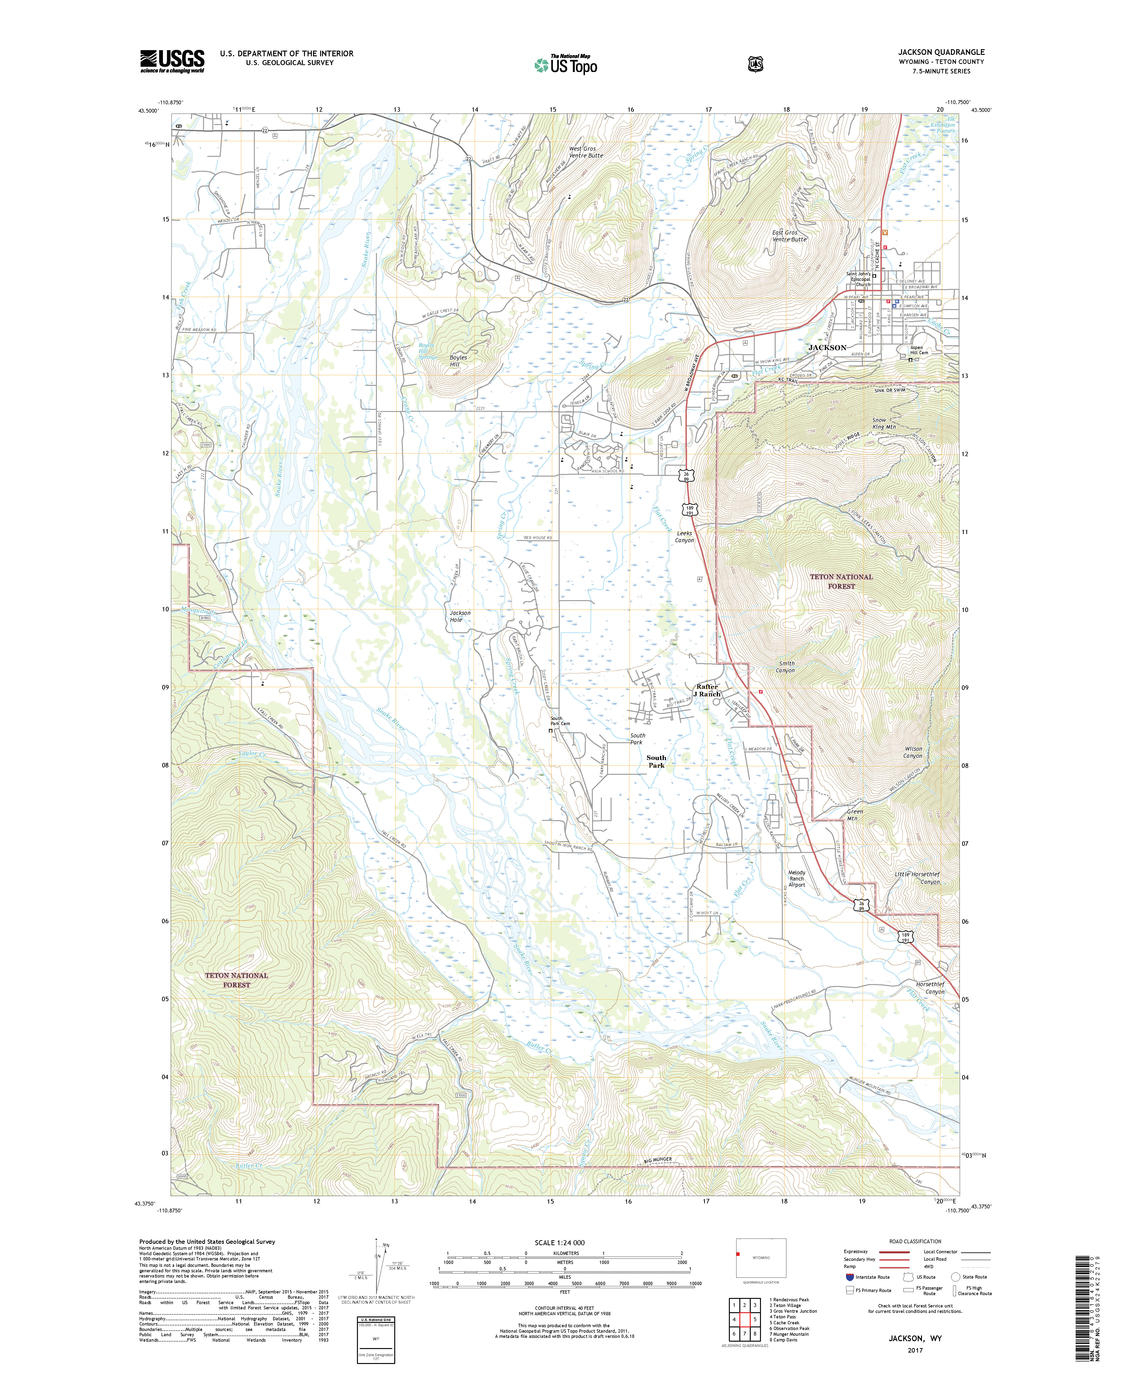 Us Topo: Maps For America - Usgs Topographic Maps Florida